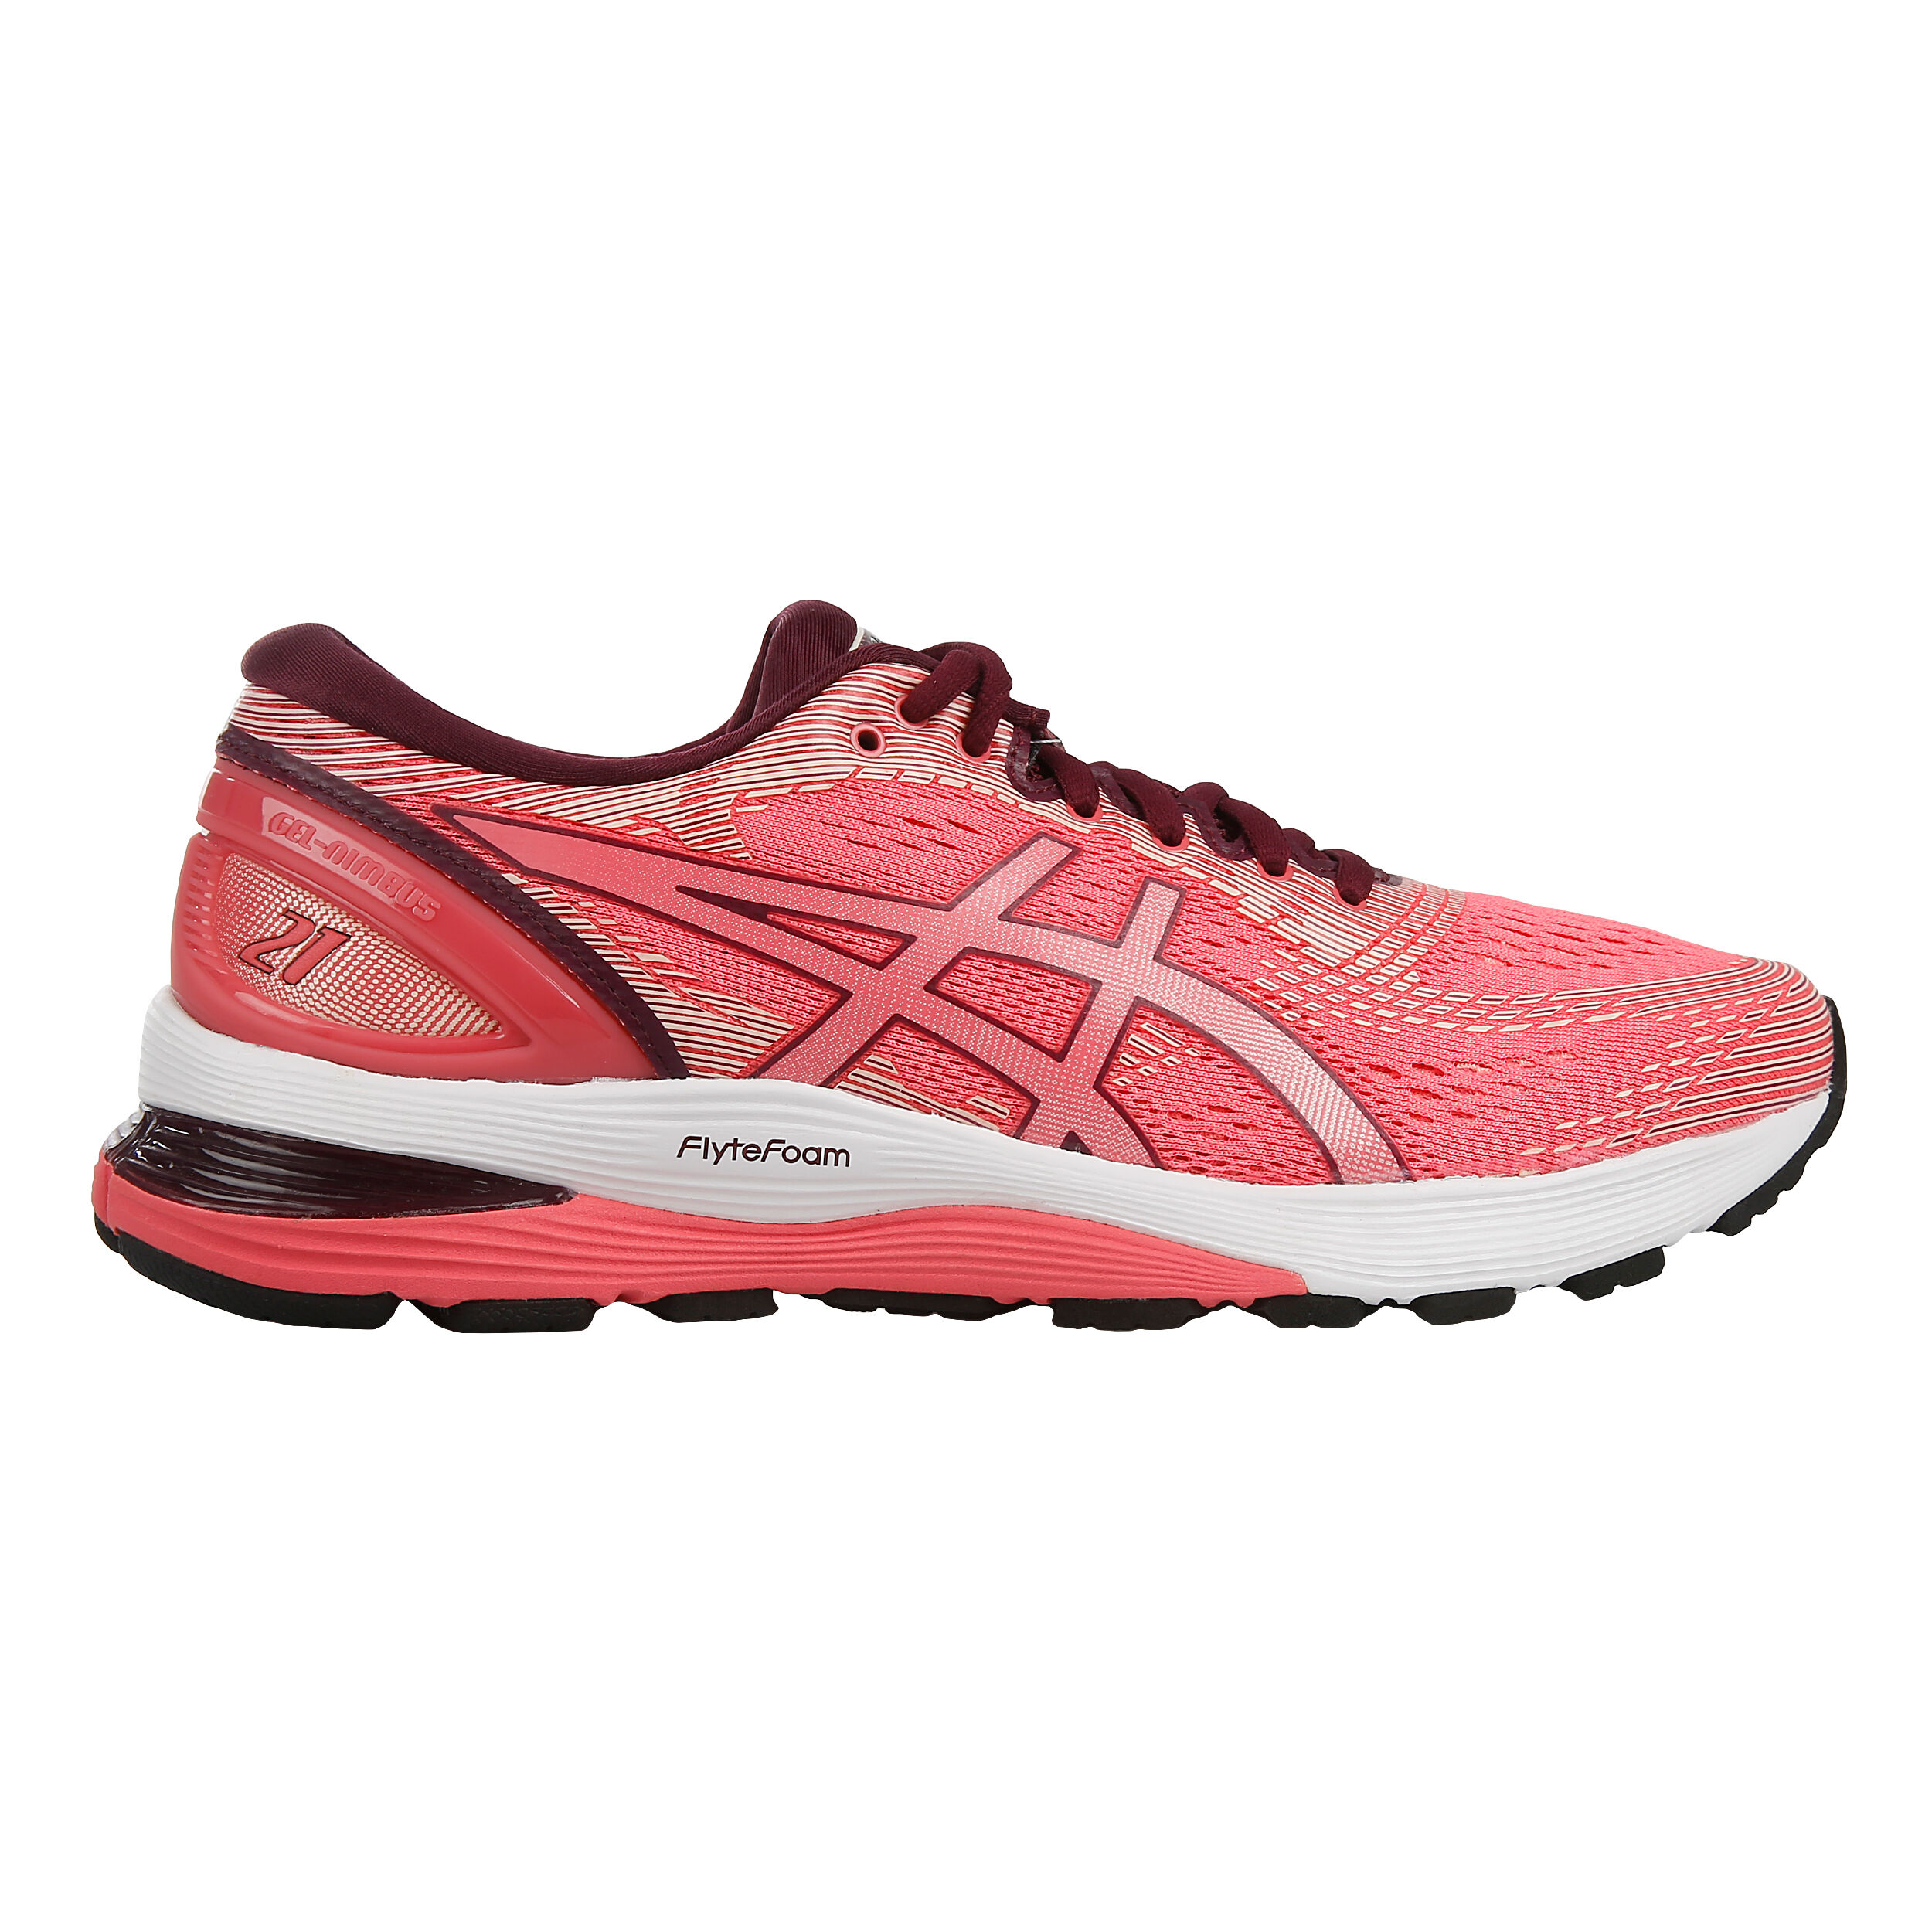 Shoe Gel Buy Neutral Red 21 Women Running Asics Nimbus PinkDark 13KJcuT5lF